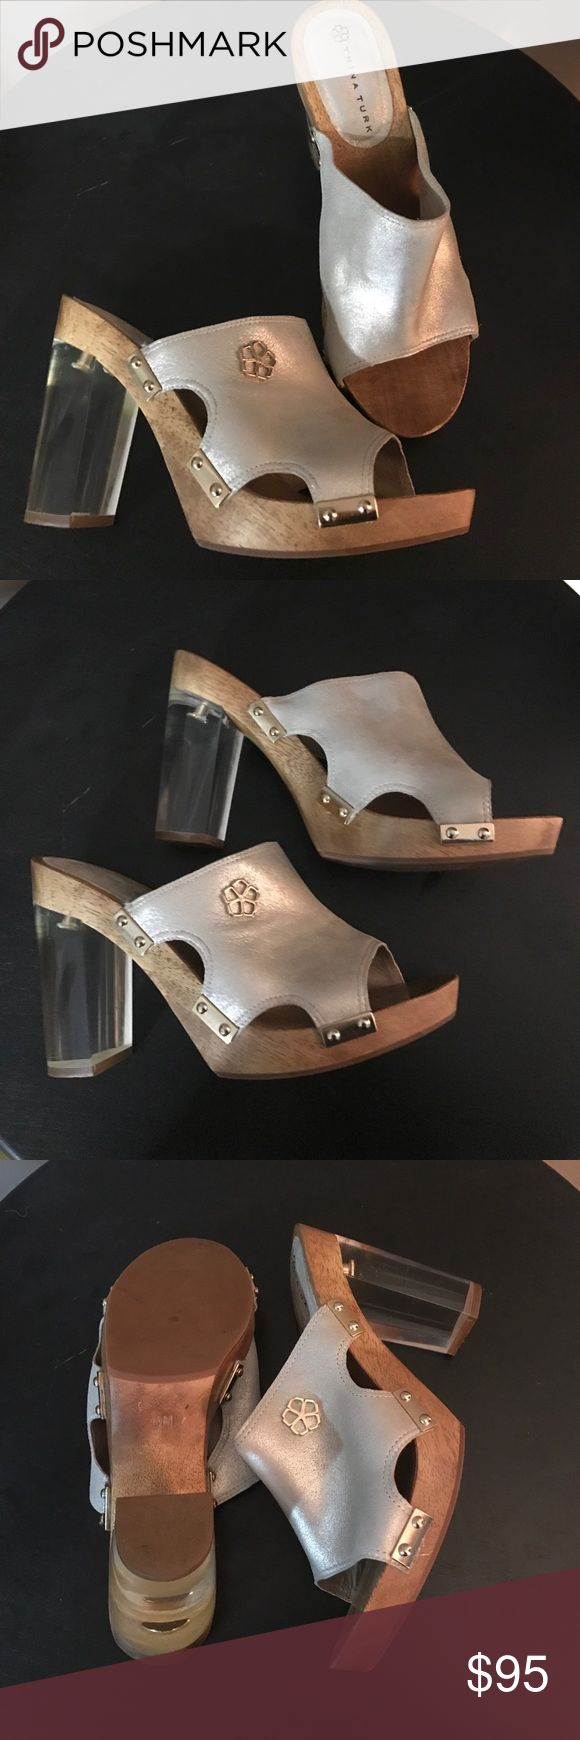 Trink turk chunky heels Size 8M Trina Turk wooden and clear chunk wedge heels. Heel height is 3.5 inches. Metallic silvery/gold strap across the top of foot. Almost new condition worn twice Trina Turk Shoes Heels